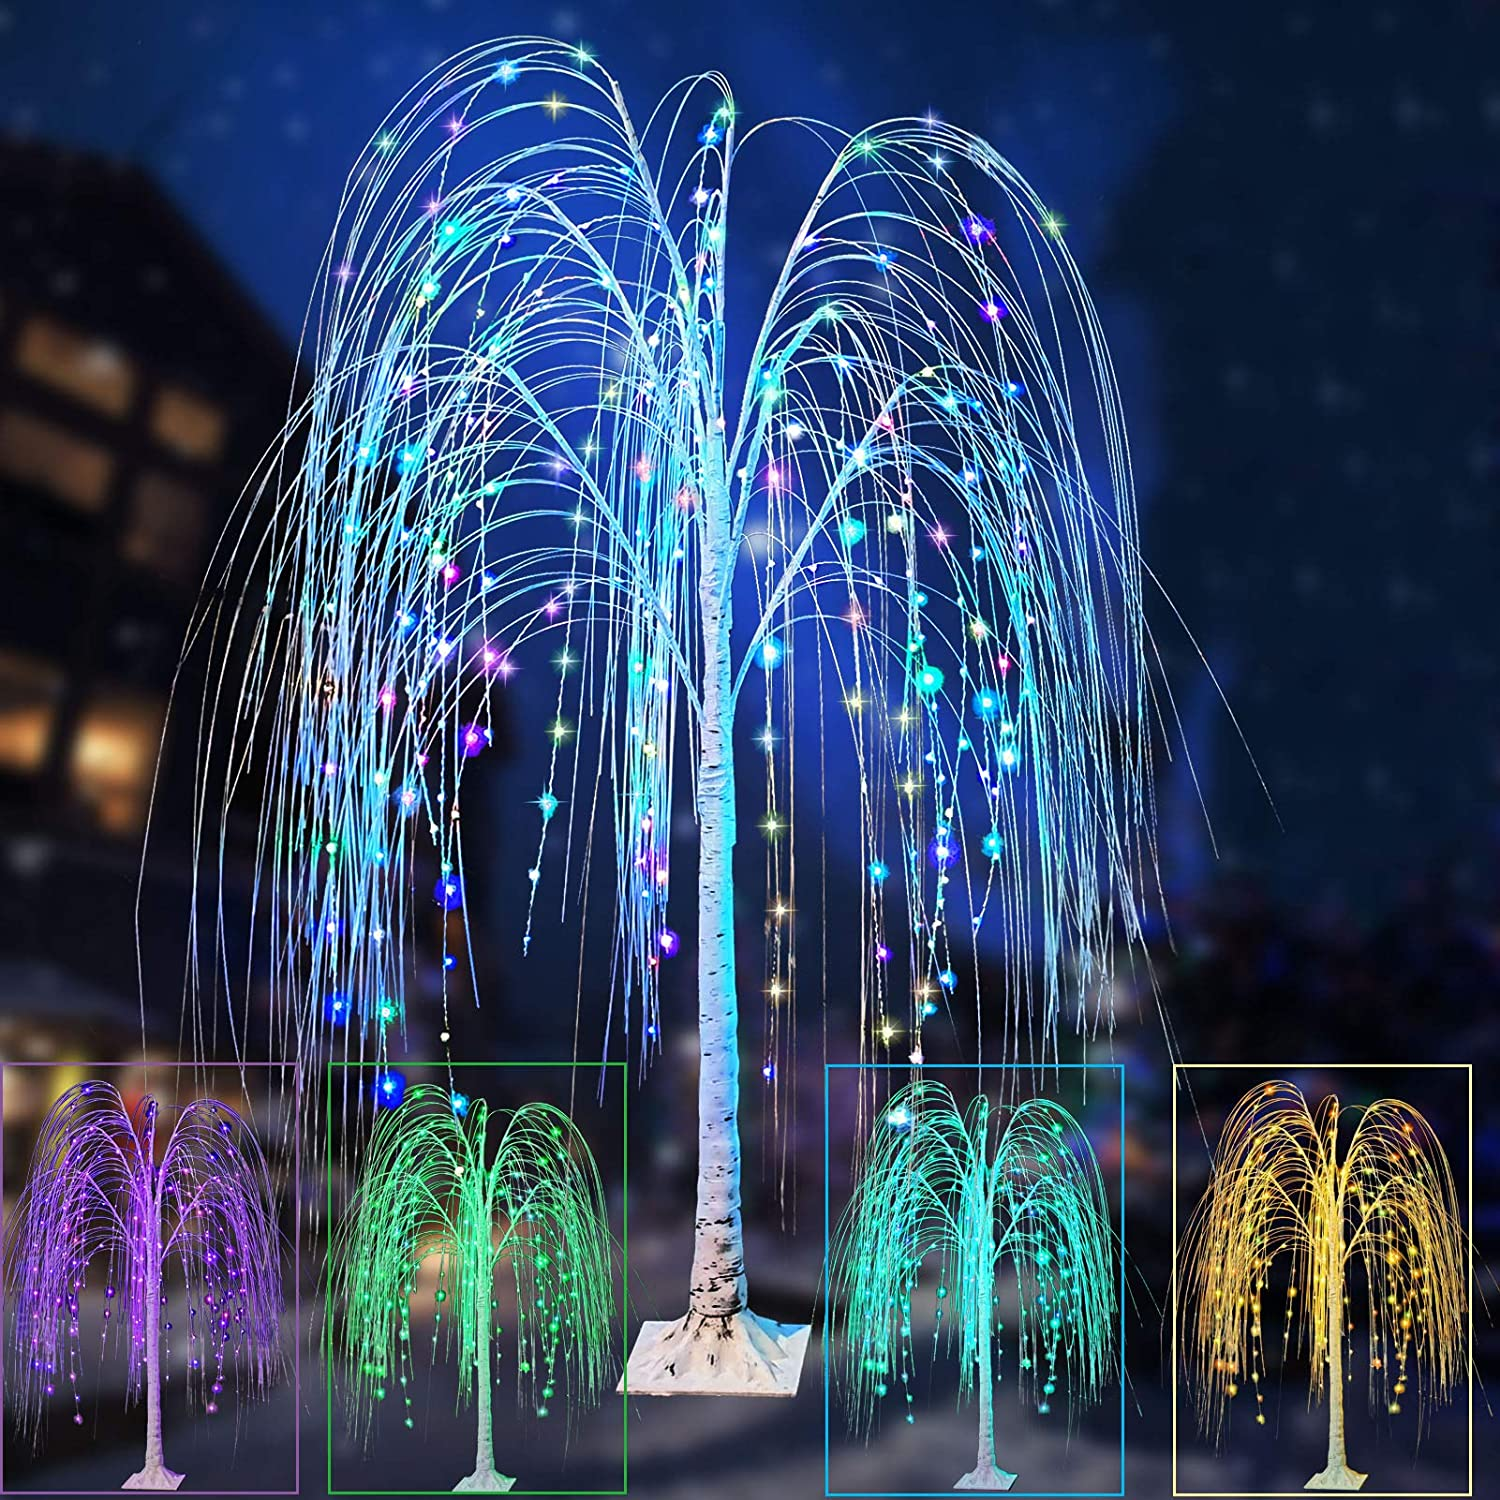 Colorful 55% OFF LED Weeping Willow Tree Lights Lighted Overseas parallel import regular item Changing Color